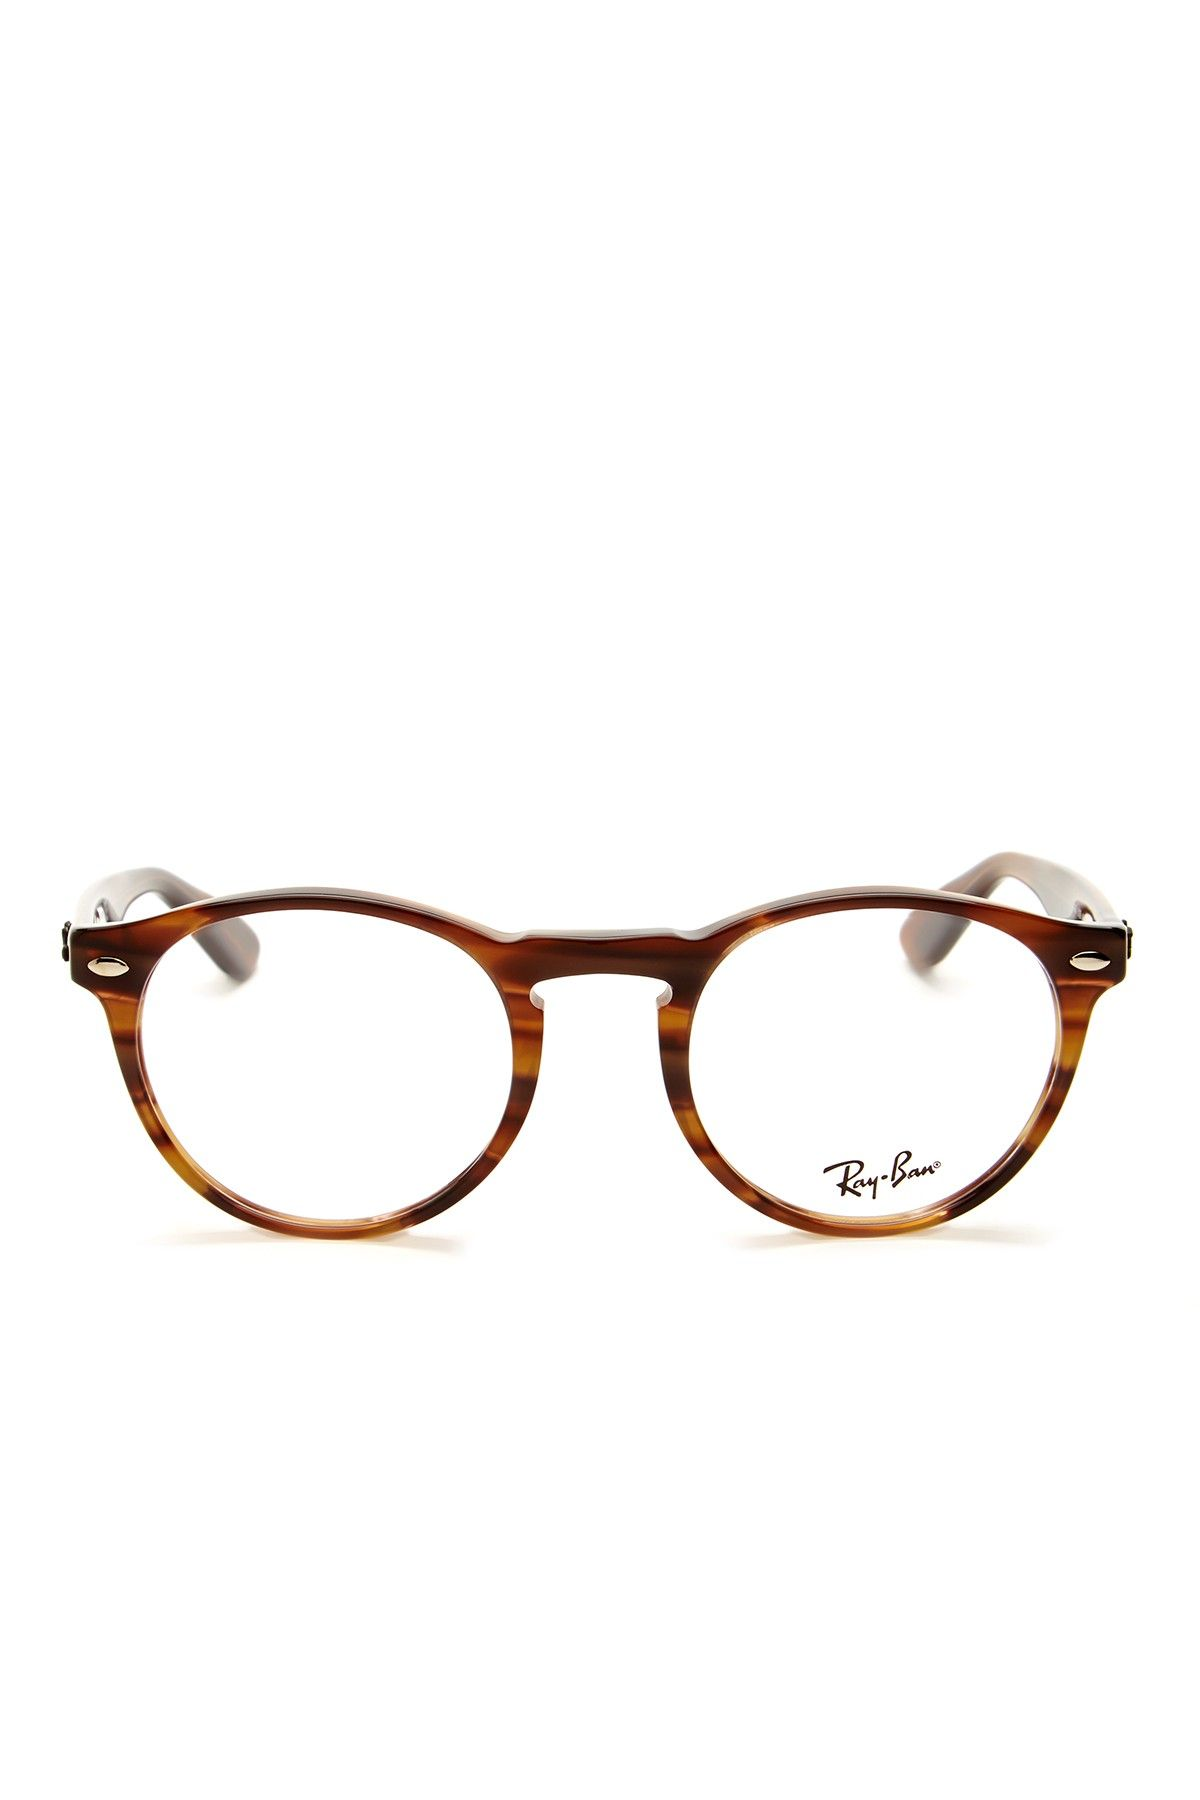 6796a4aaf9 Ray Ban Men's Striped Brown Acetate Eyeglasses | Eyewear | Gafas ...